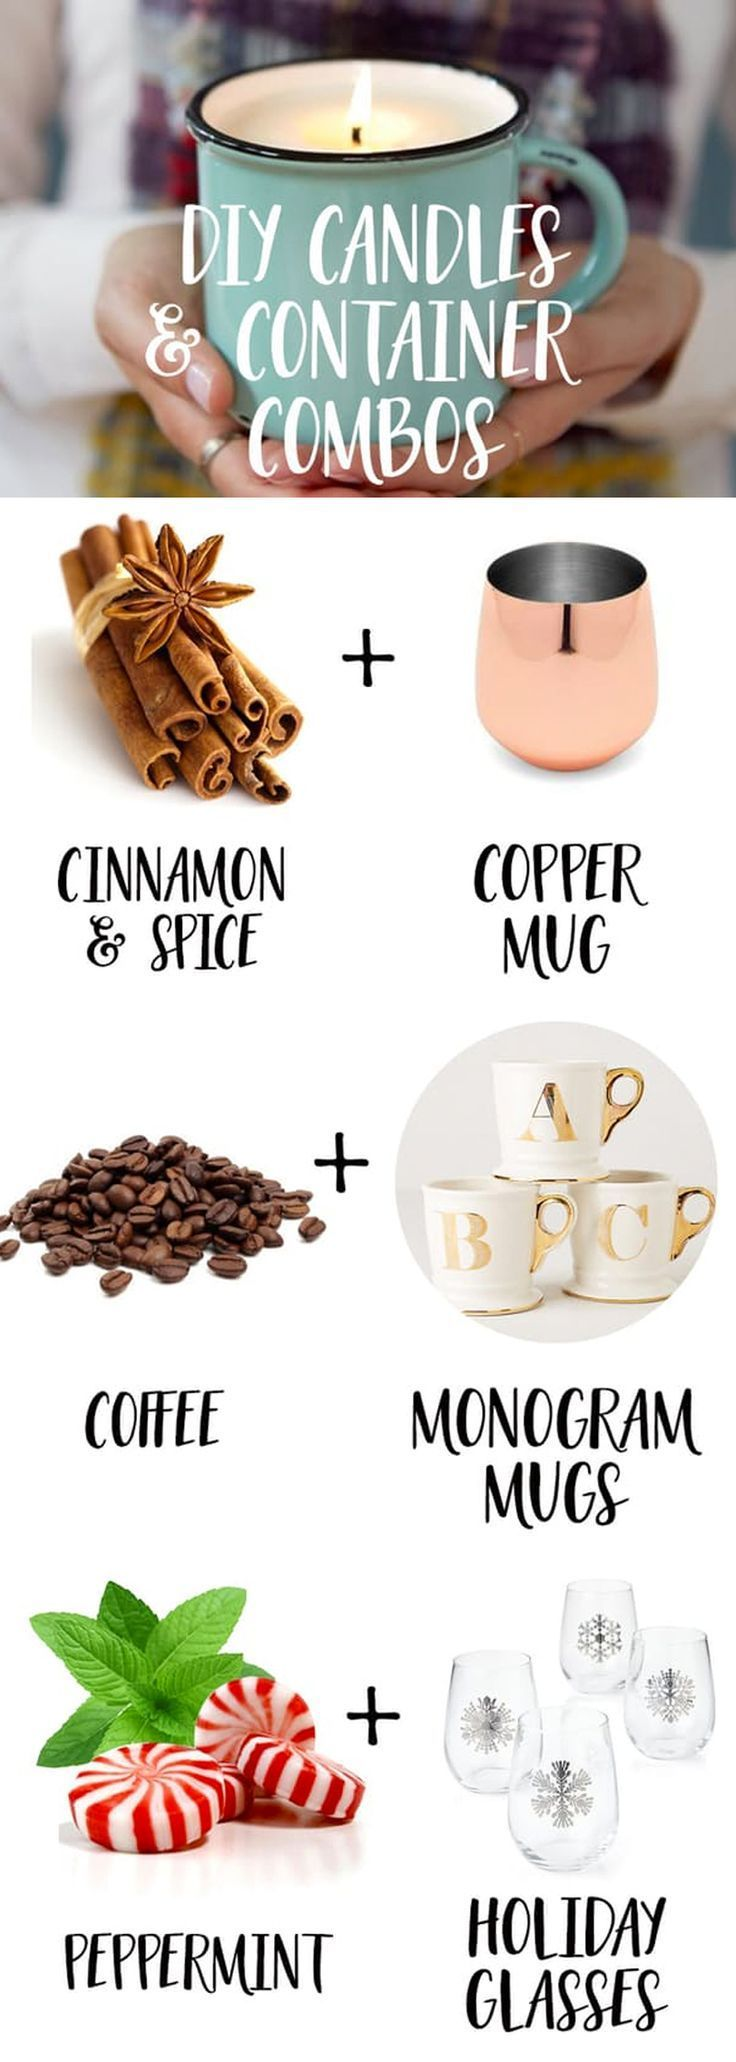 Tis the season to light lots and lots of candles. Thankfully making all those candles on your own is easier than you think. Here are nine great DIY candle and container combos to help keep you busy (and cozy) this season.Handmade candles are a great excuse to visit the thrift shop and find some unique or unexpected pieces. If you get a little candle-making crazy, then consider your holiday and hostess gifts taken care of.